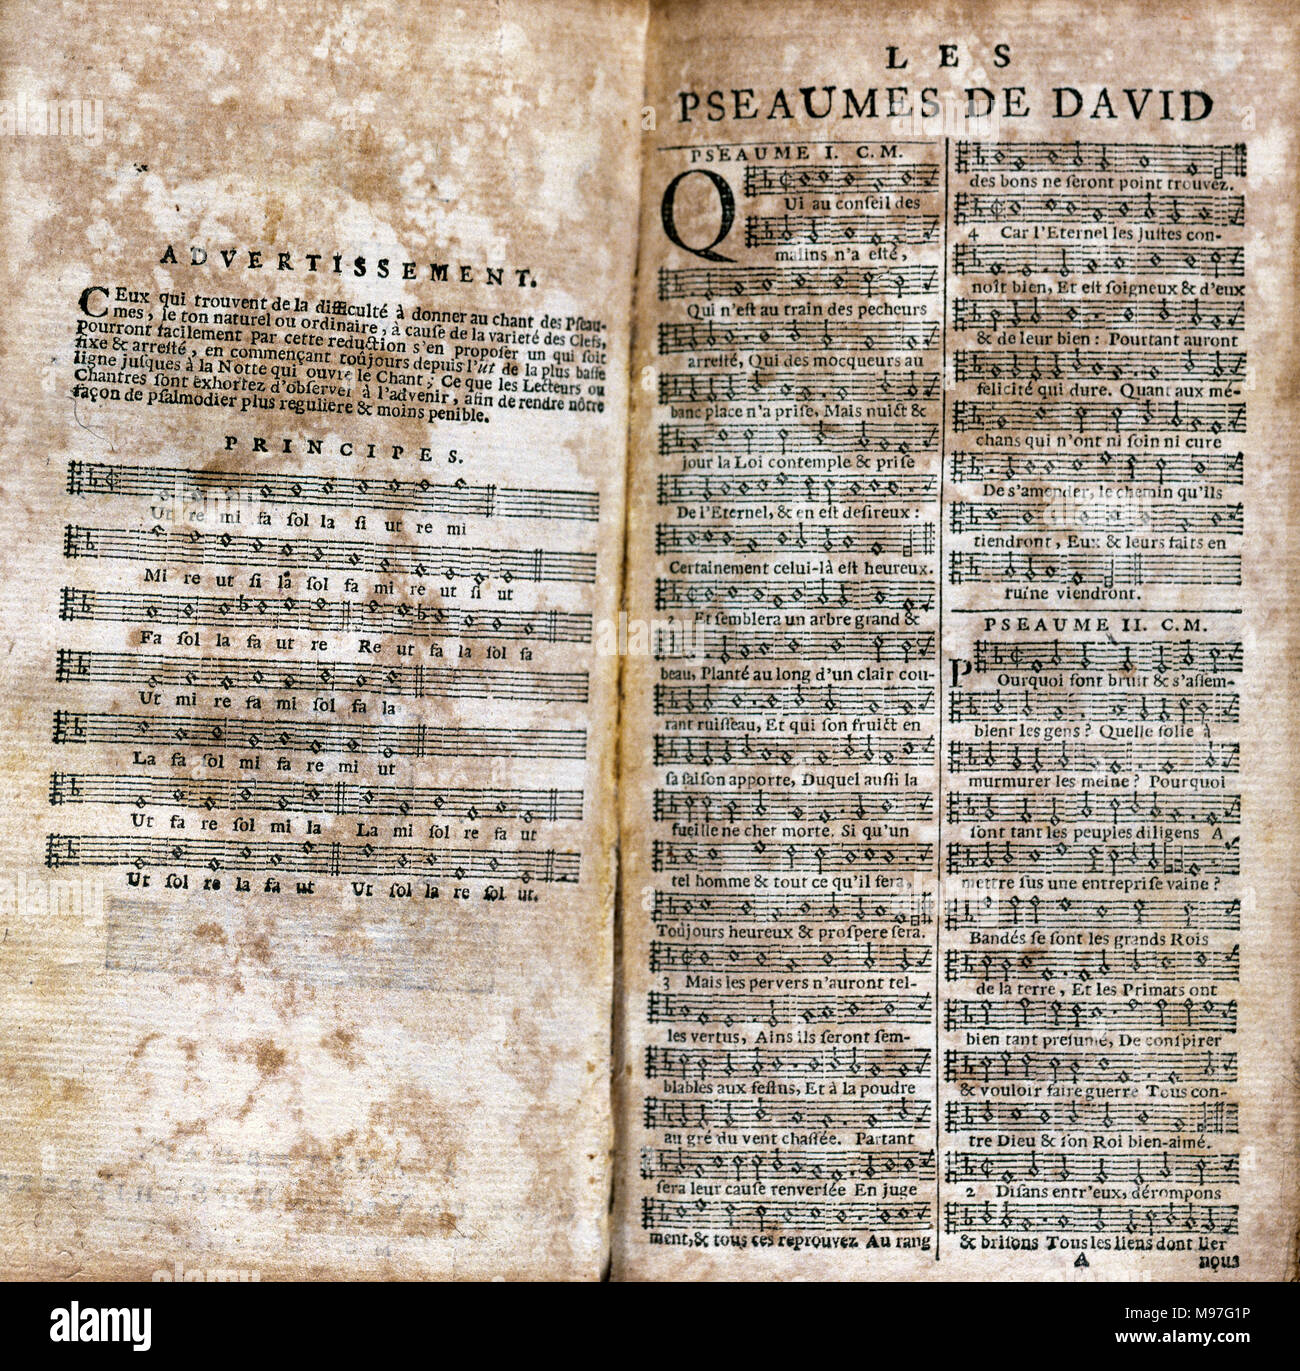 Clement Marot (1496-1544). French poet. Around 1543 he translated in verse the Psalms of David that earned him the censorship of the Sorbonne. Psalms of David. Beginning of Psalms I and II. Printed edition in Amsterdam, 1683. Stock Photo